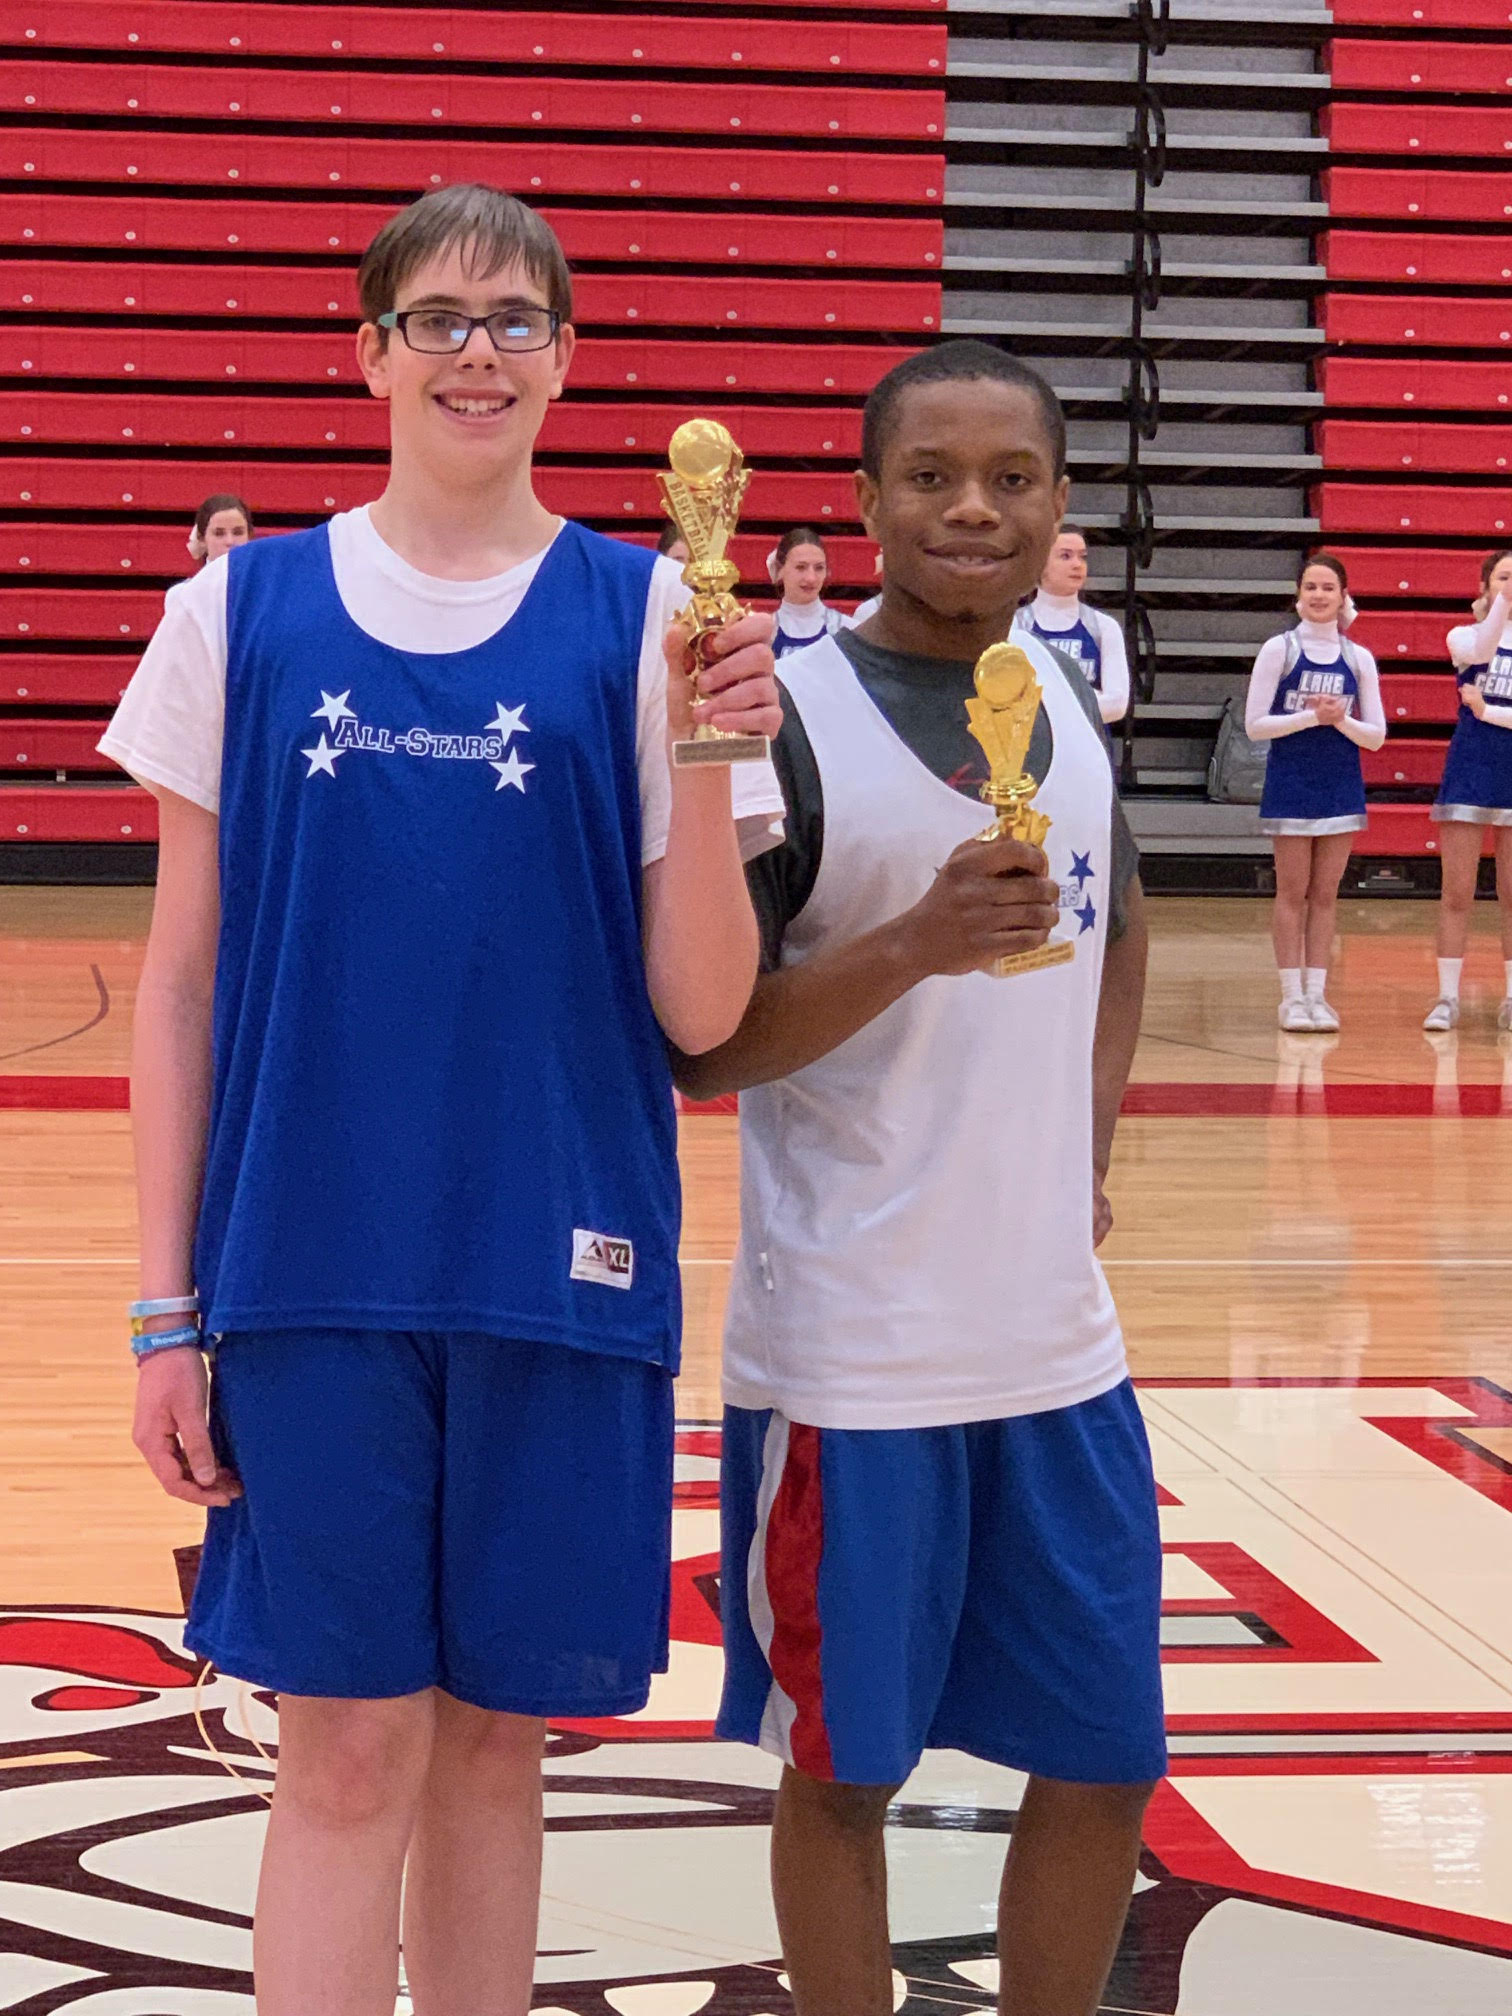 The Lake Central All-Stars wrapped up their basketball season this week. Austin Huber and Lamar Murray won the basketball skills contest at the Crown Point tournament.